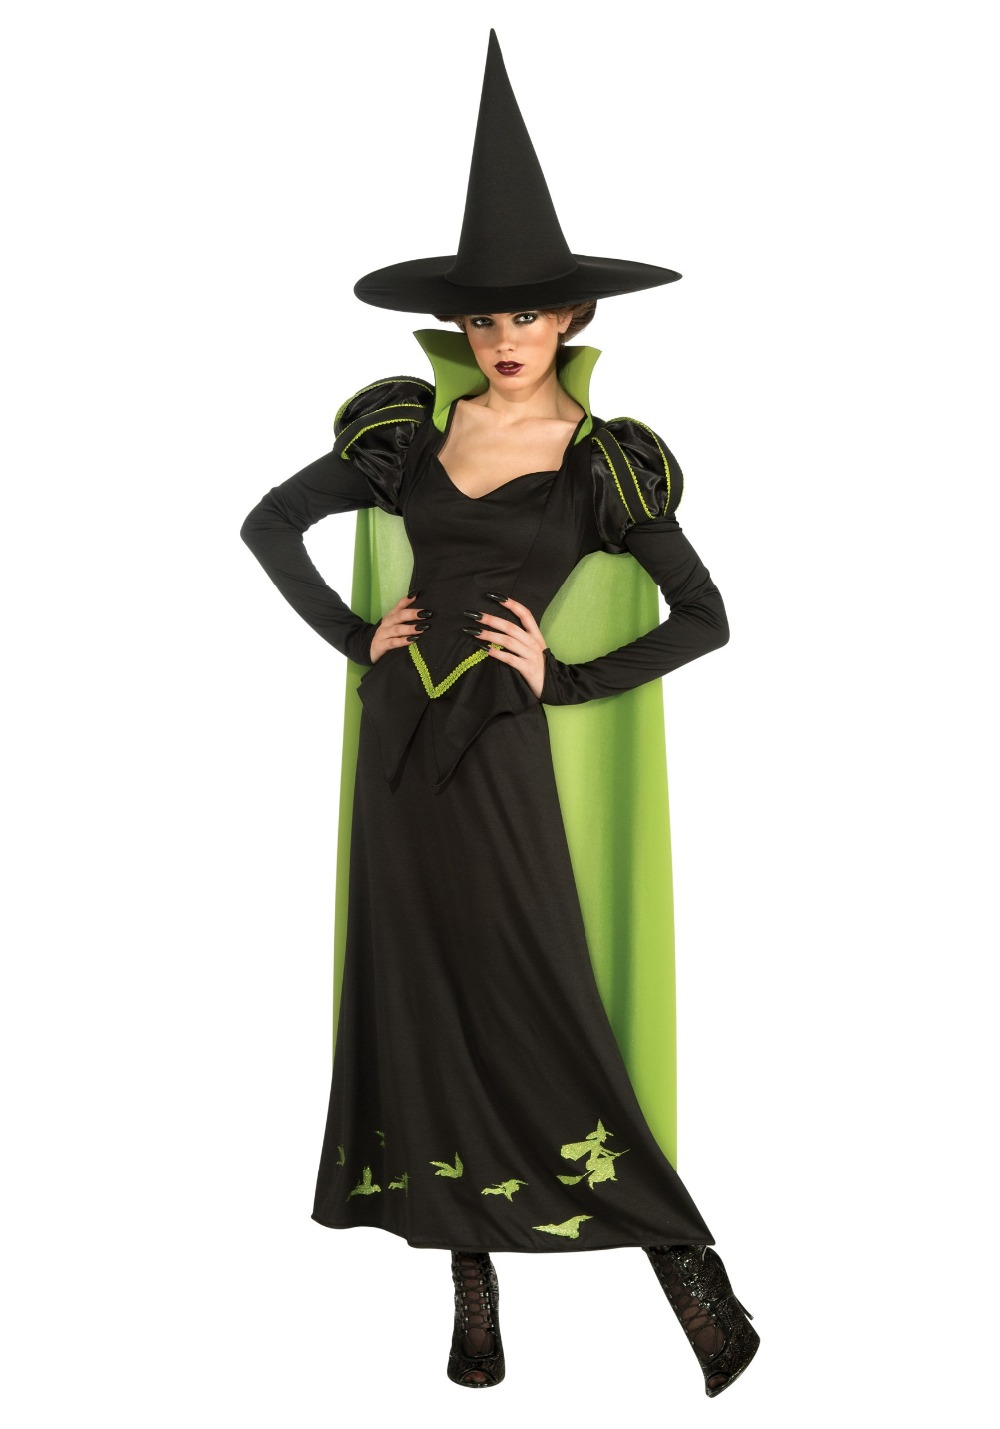 UTMEON Sexy Black Cosplay Witch Costume For Woman Halloween Witch Net Yarn Costume Carnival Witch Dress